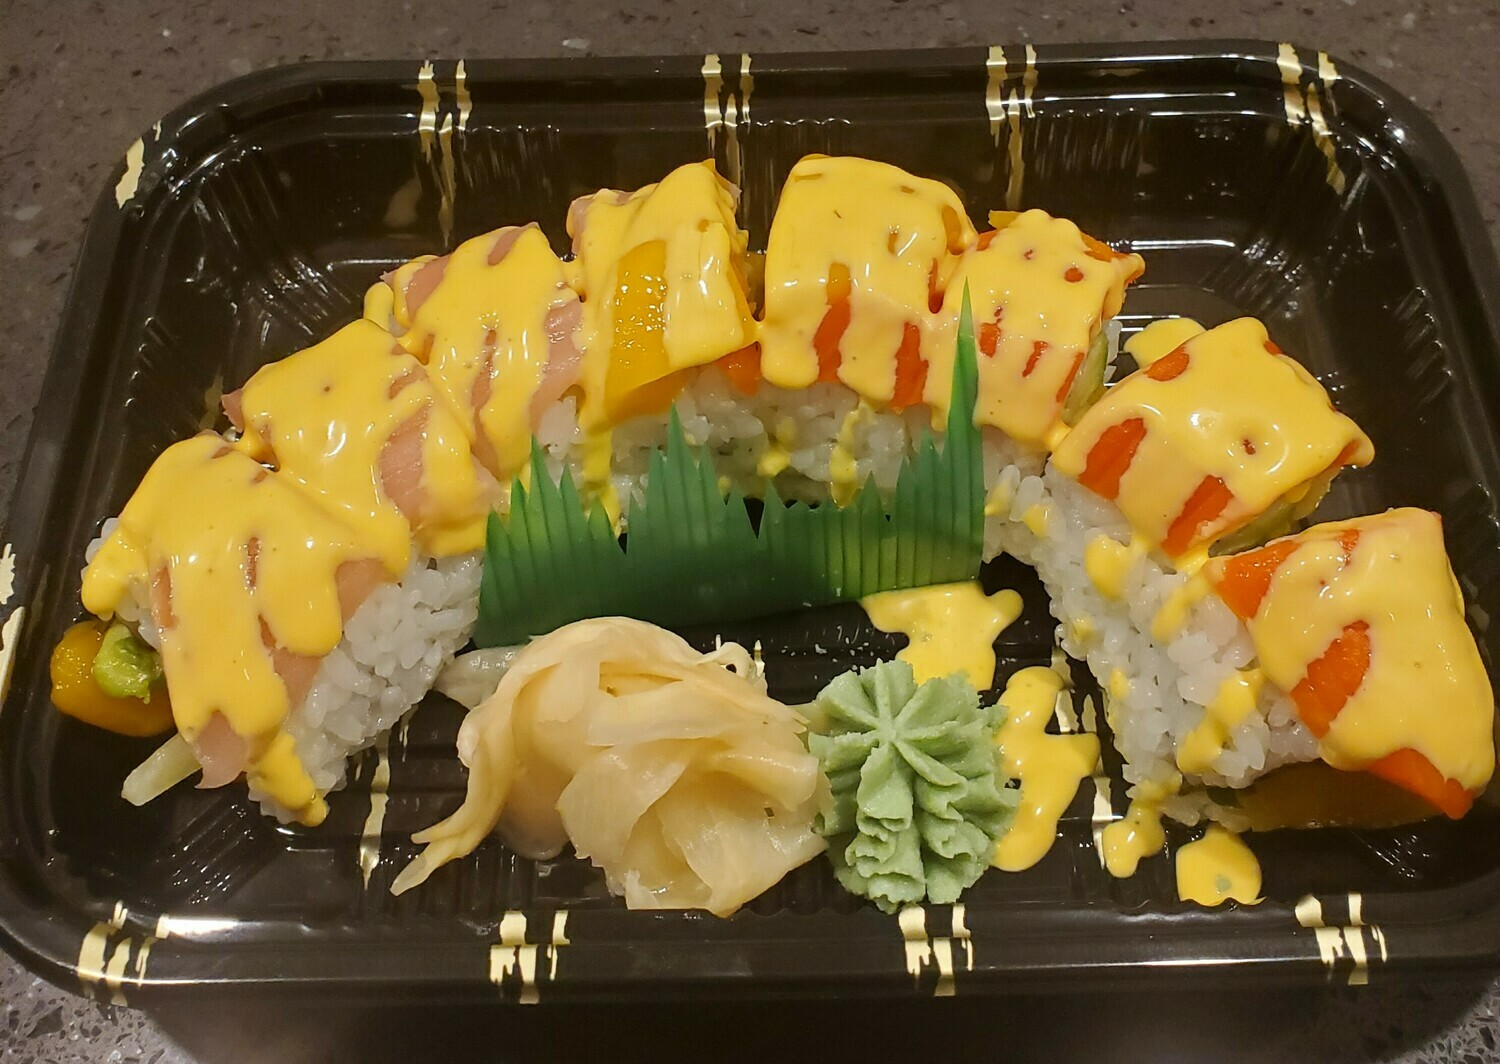 Pirates Of The Caribbean Roll (Tropical)